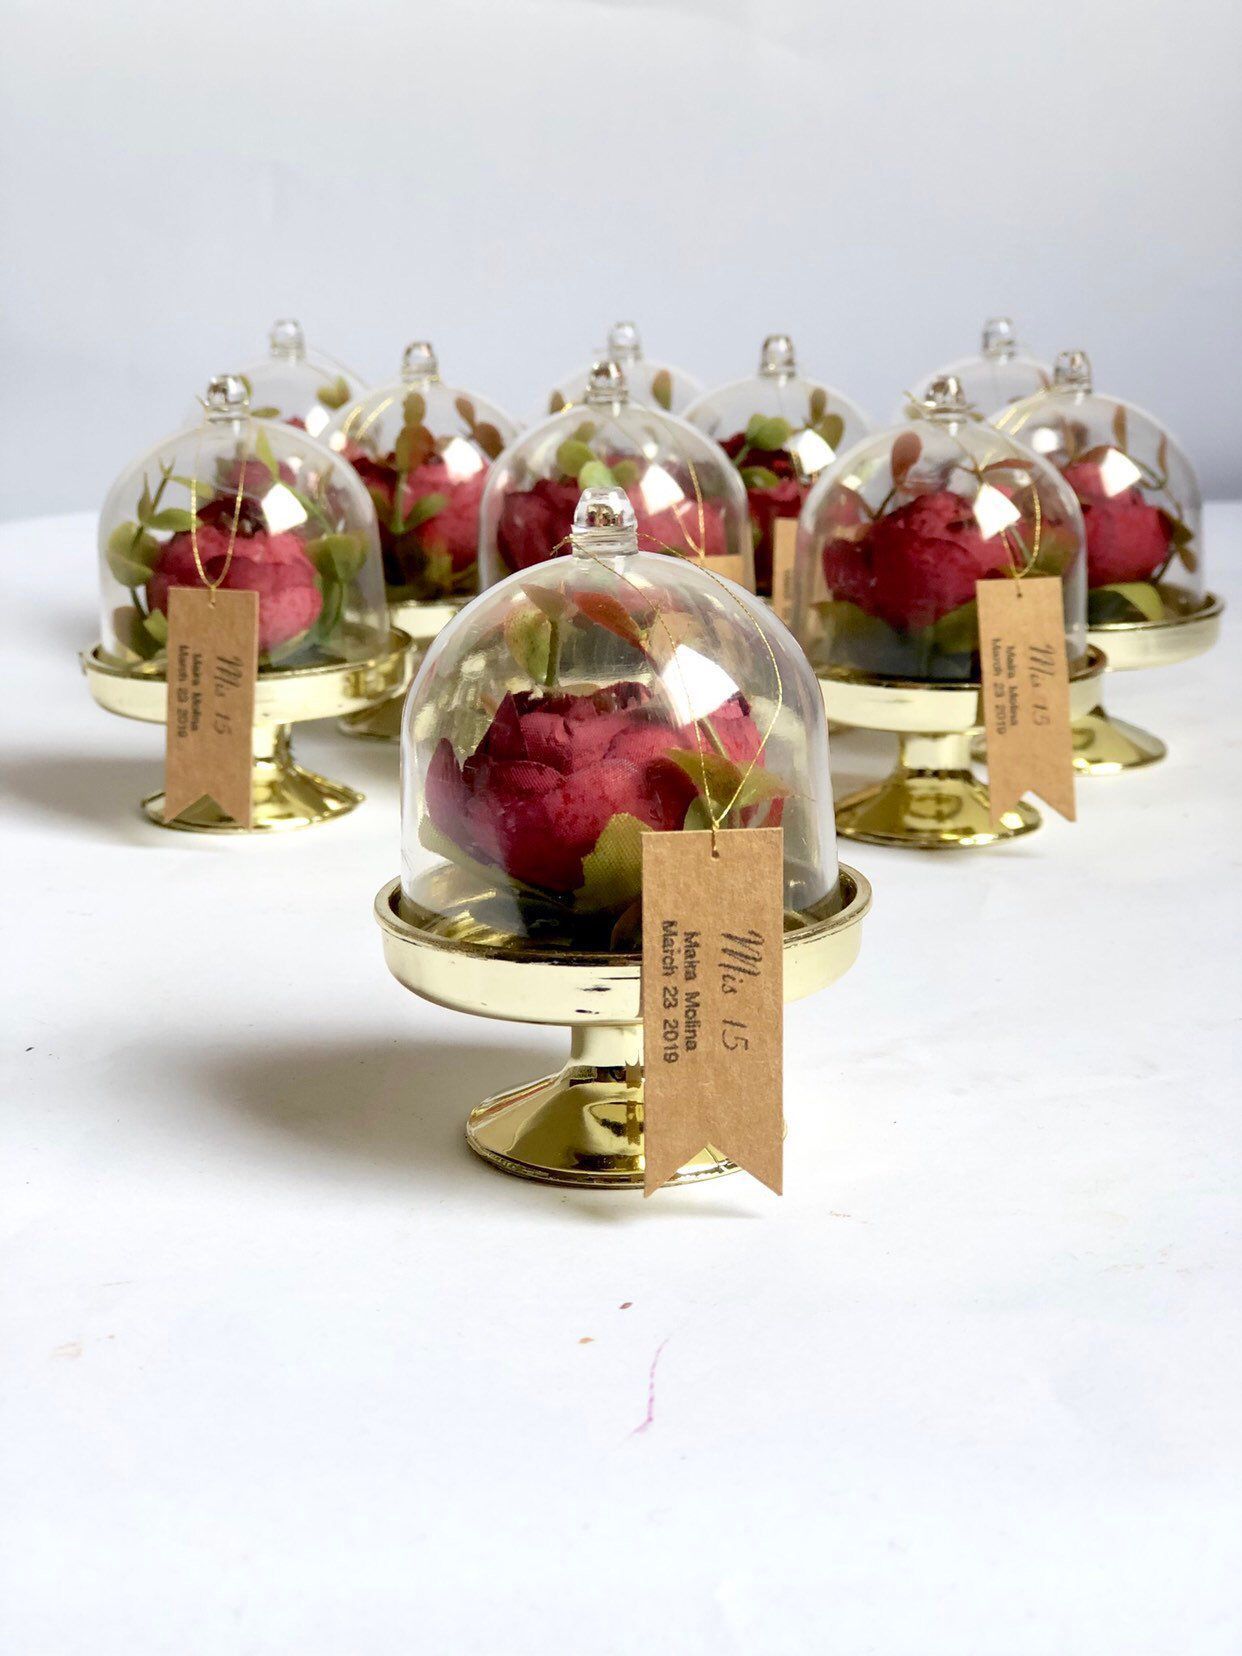 10 pcs dome beauty and the beast favor, cloche dome, wedding